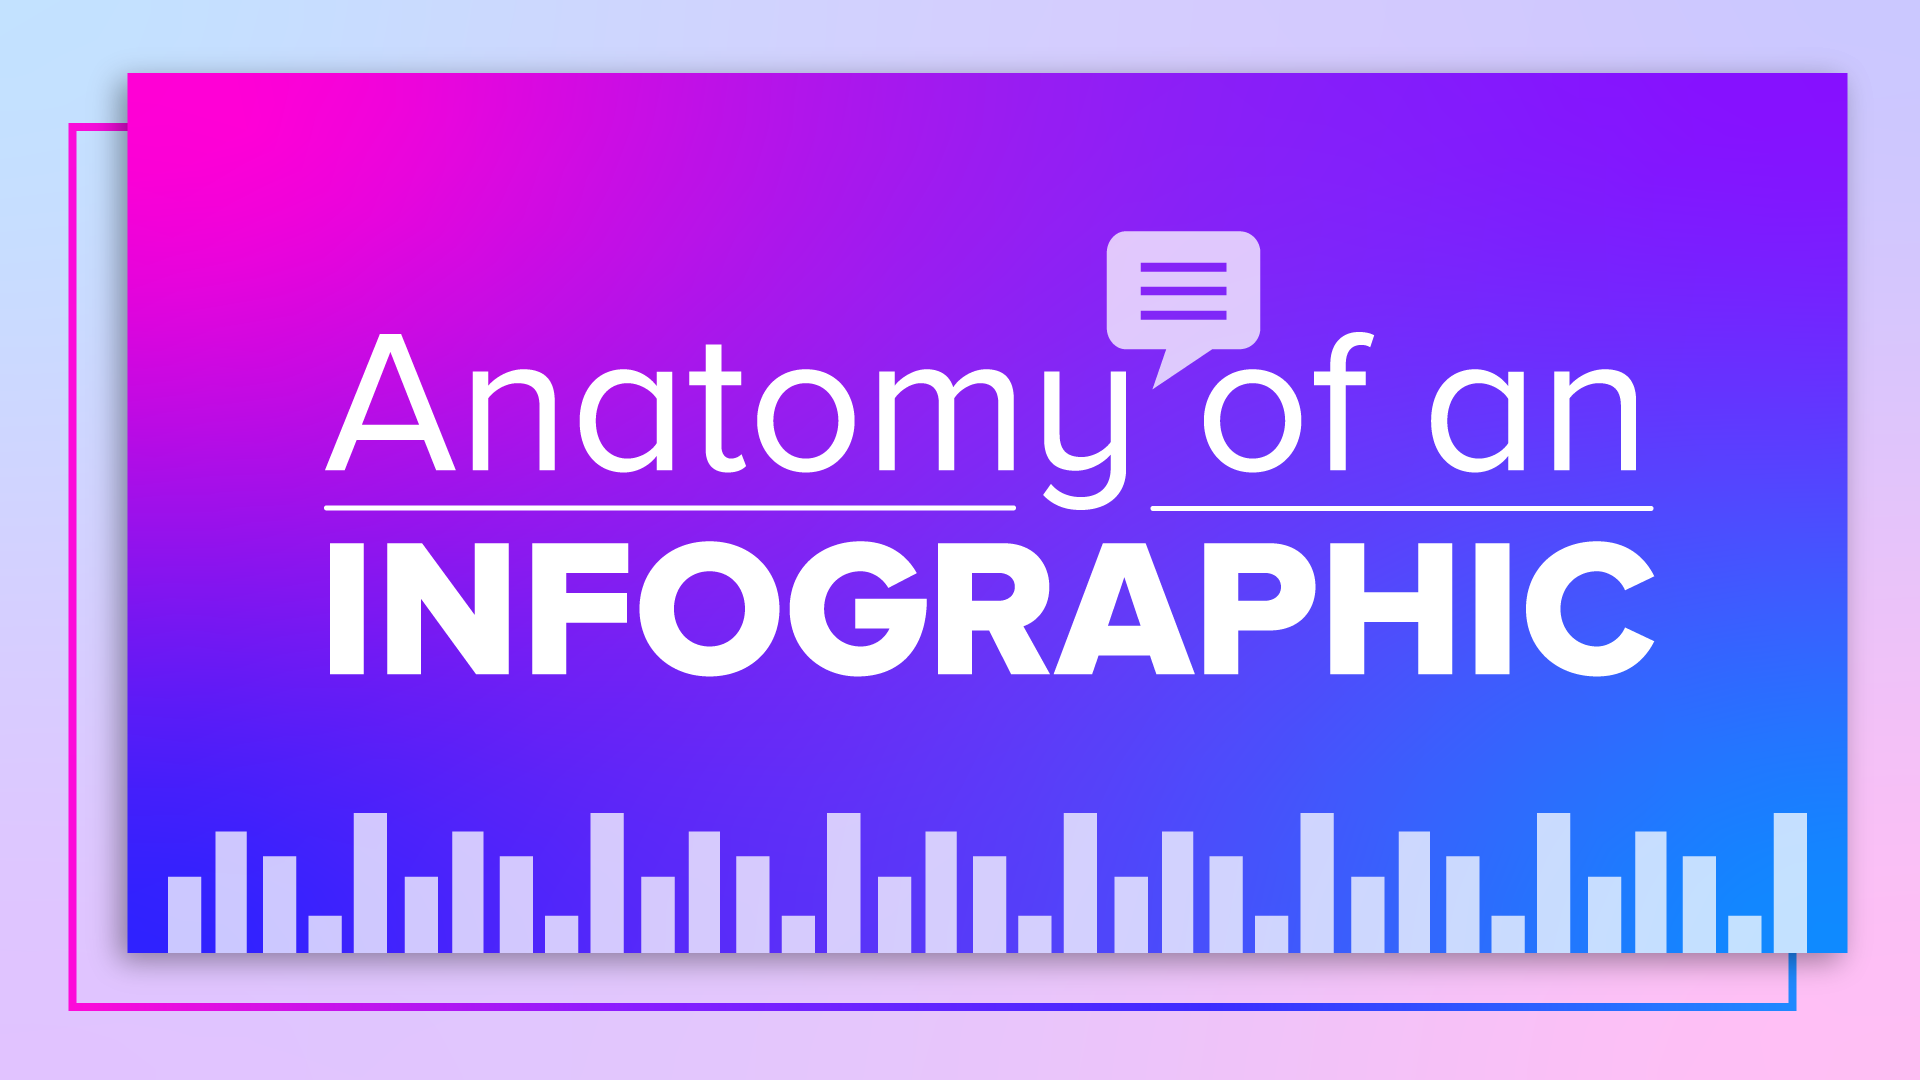 Anatomy of an infographic